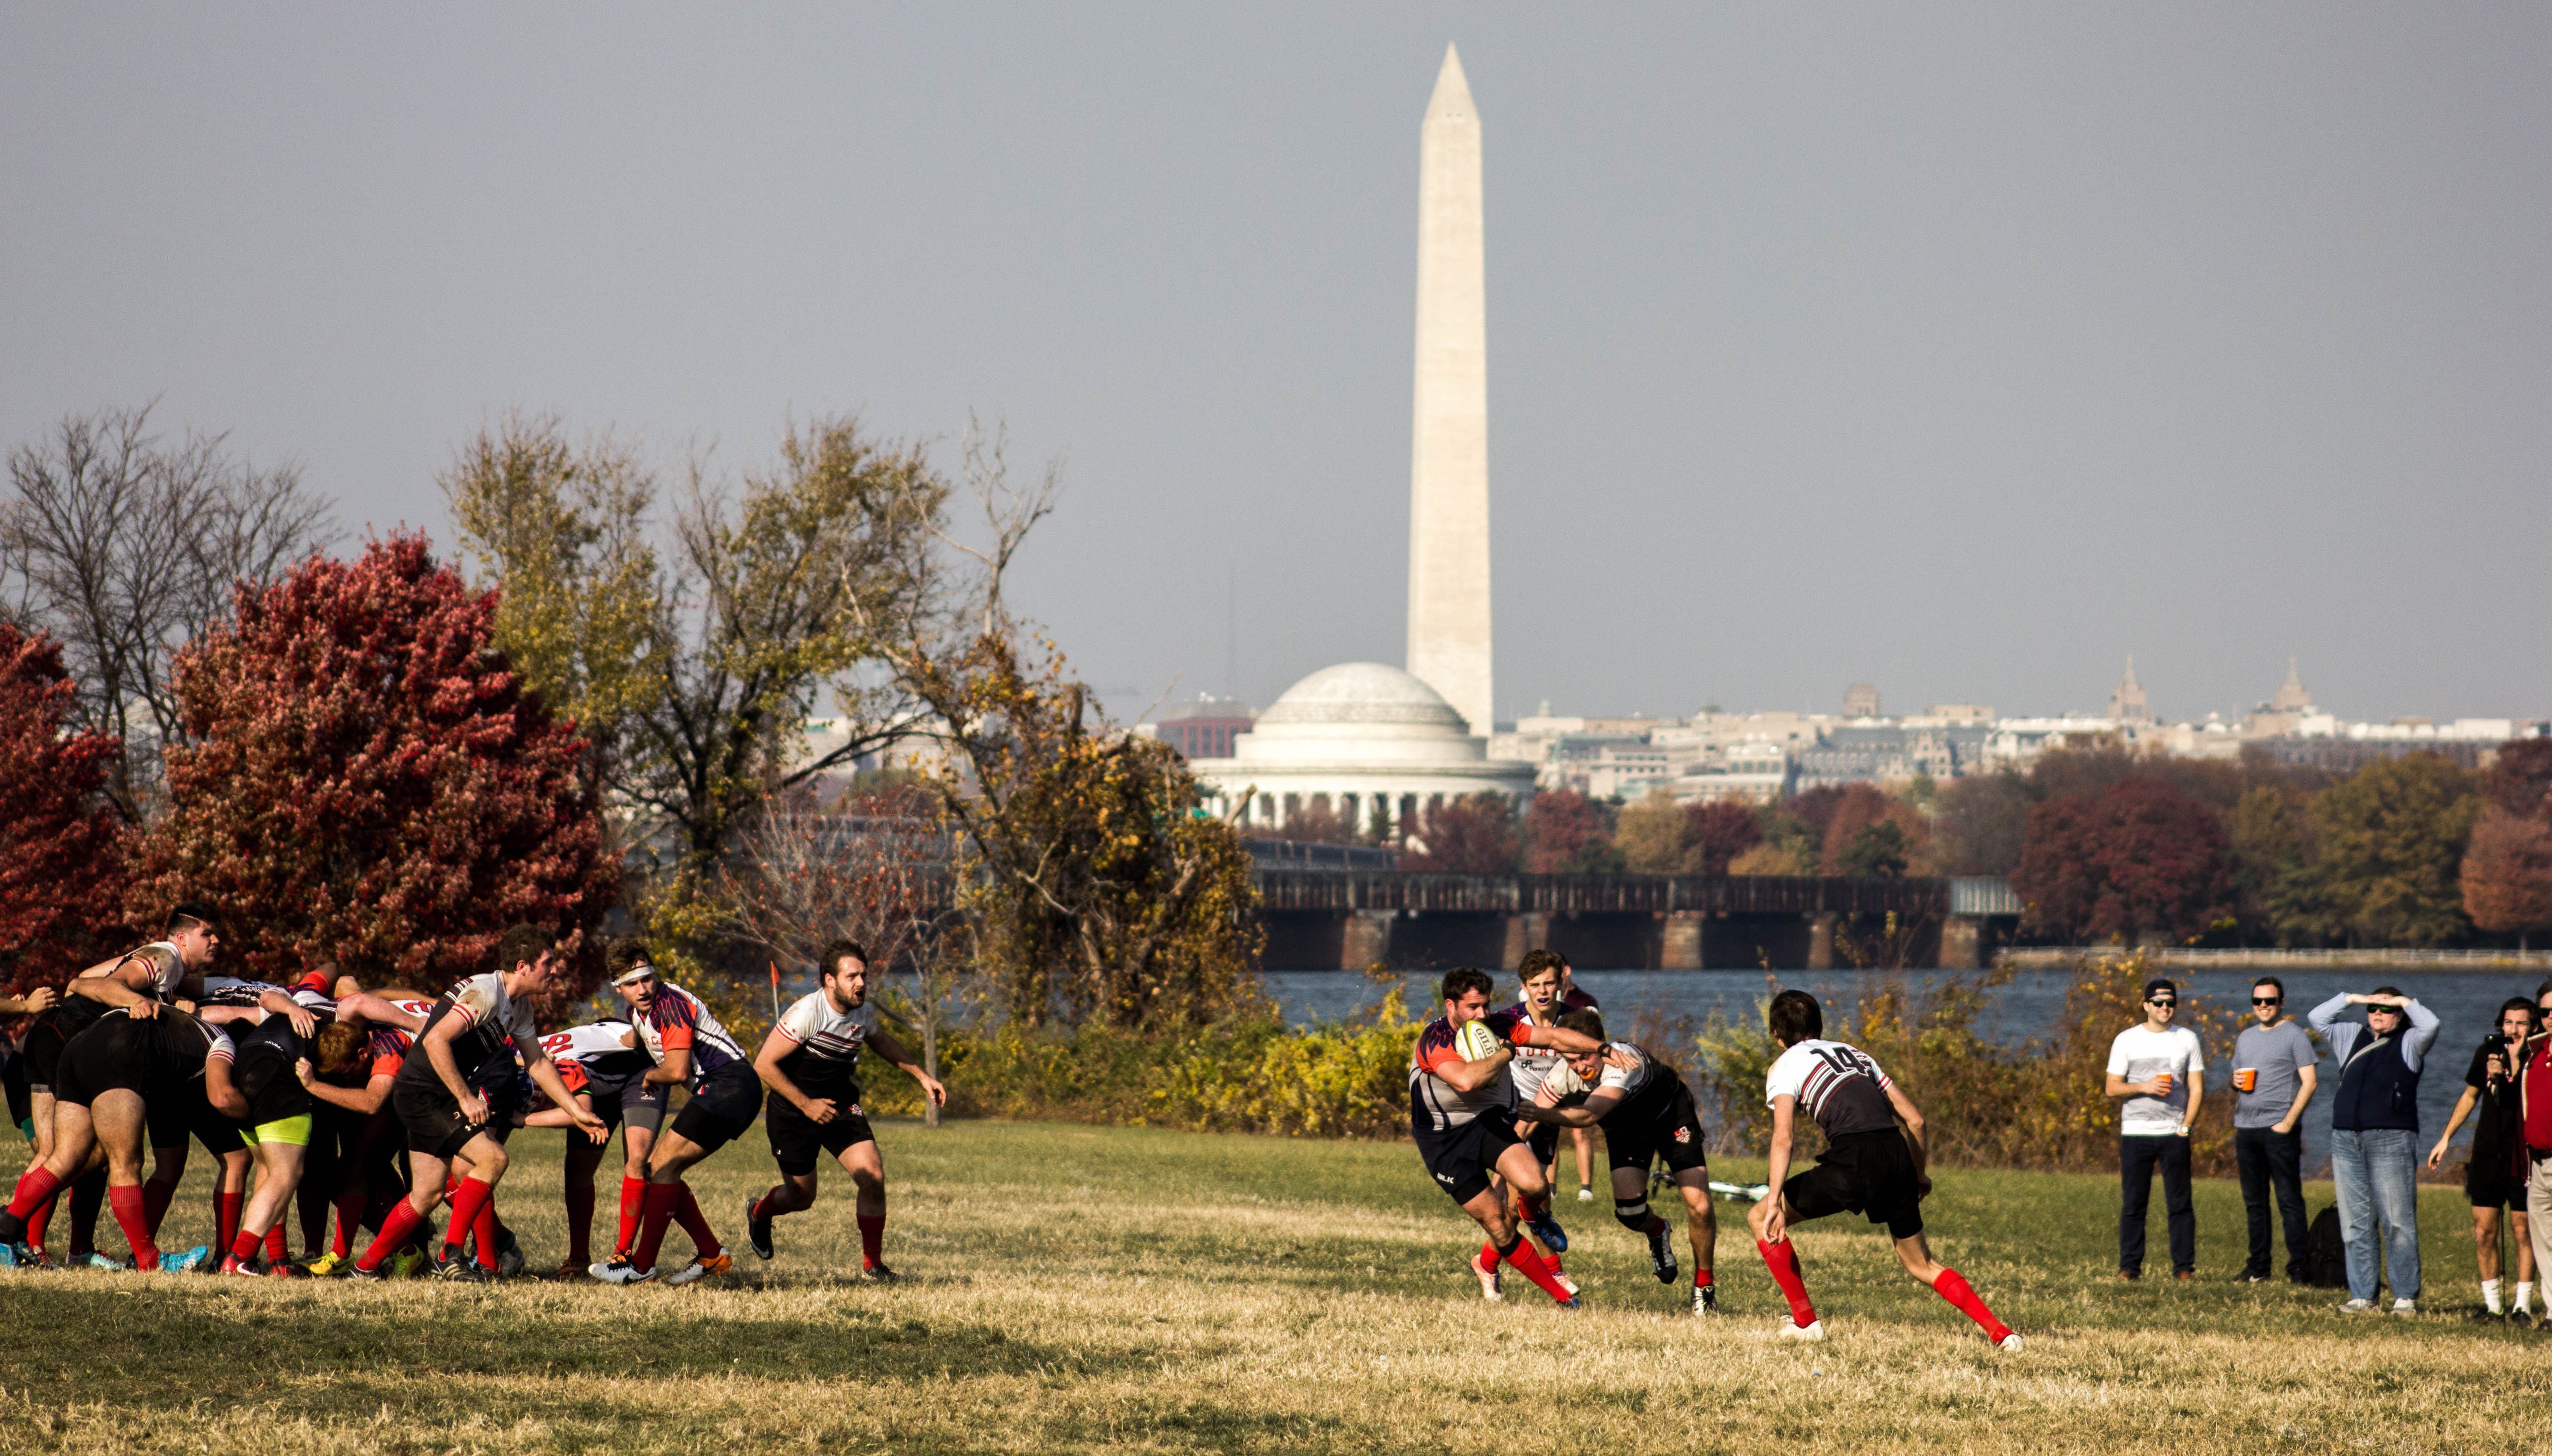 Men's Rugby game in DC